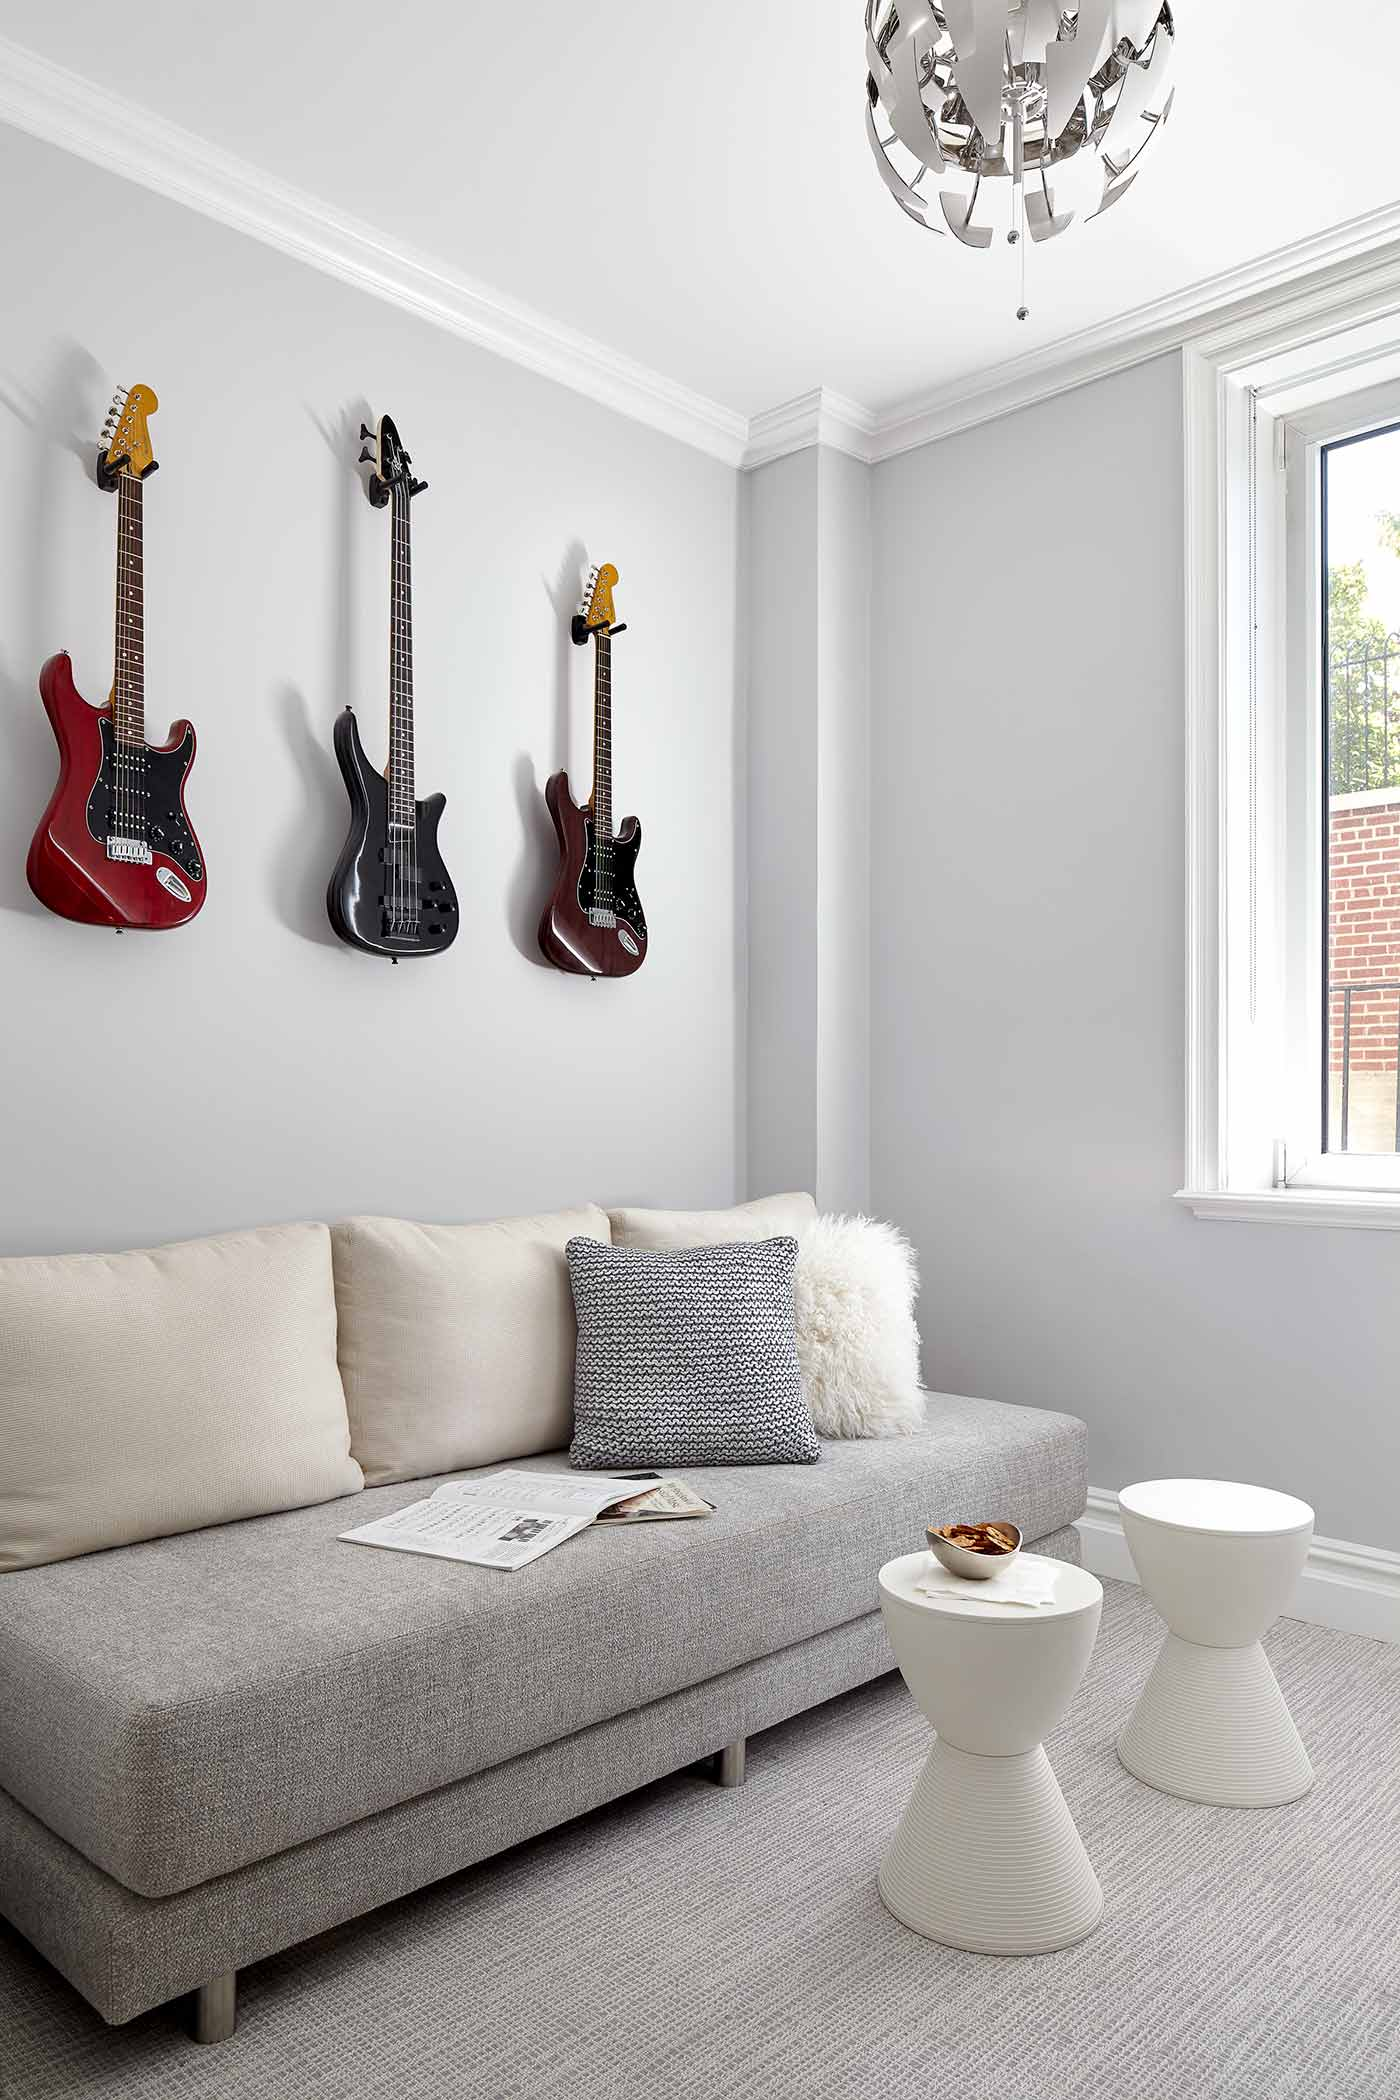 Fun and relaxed kids lounge for playing music and hanging out with friends in a NYC apartment